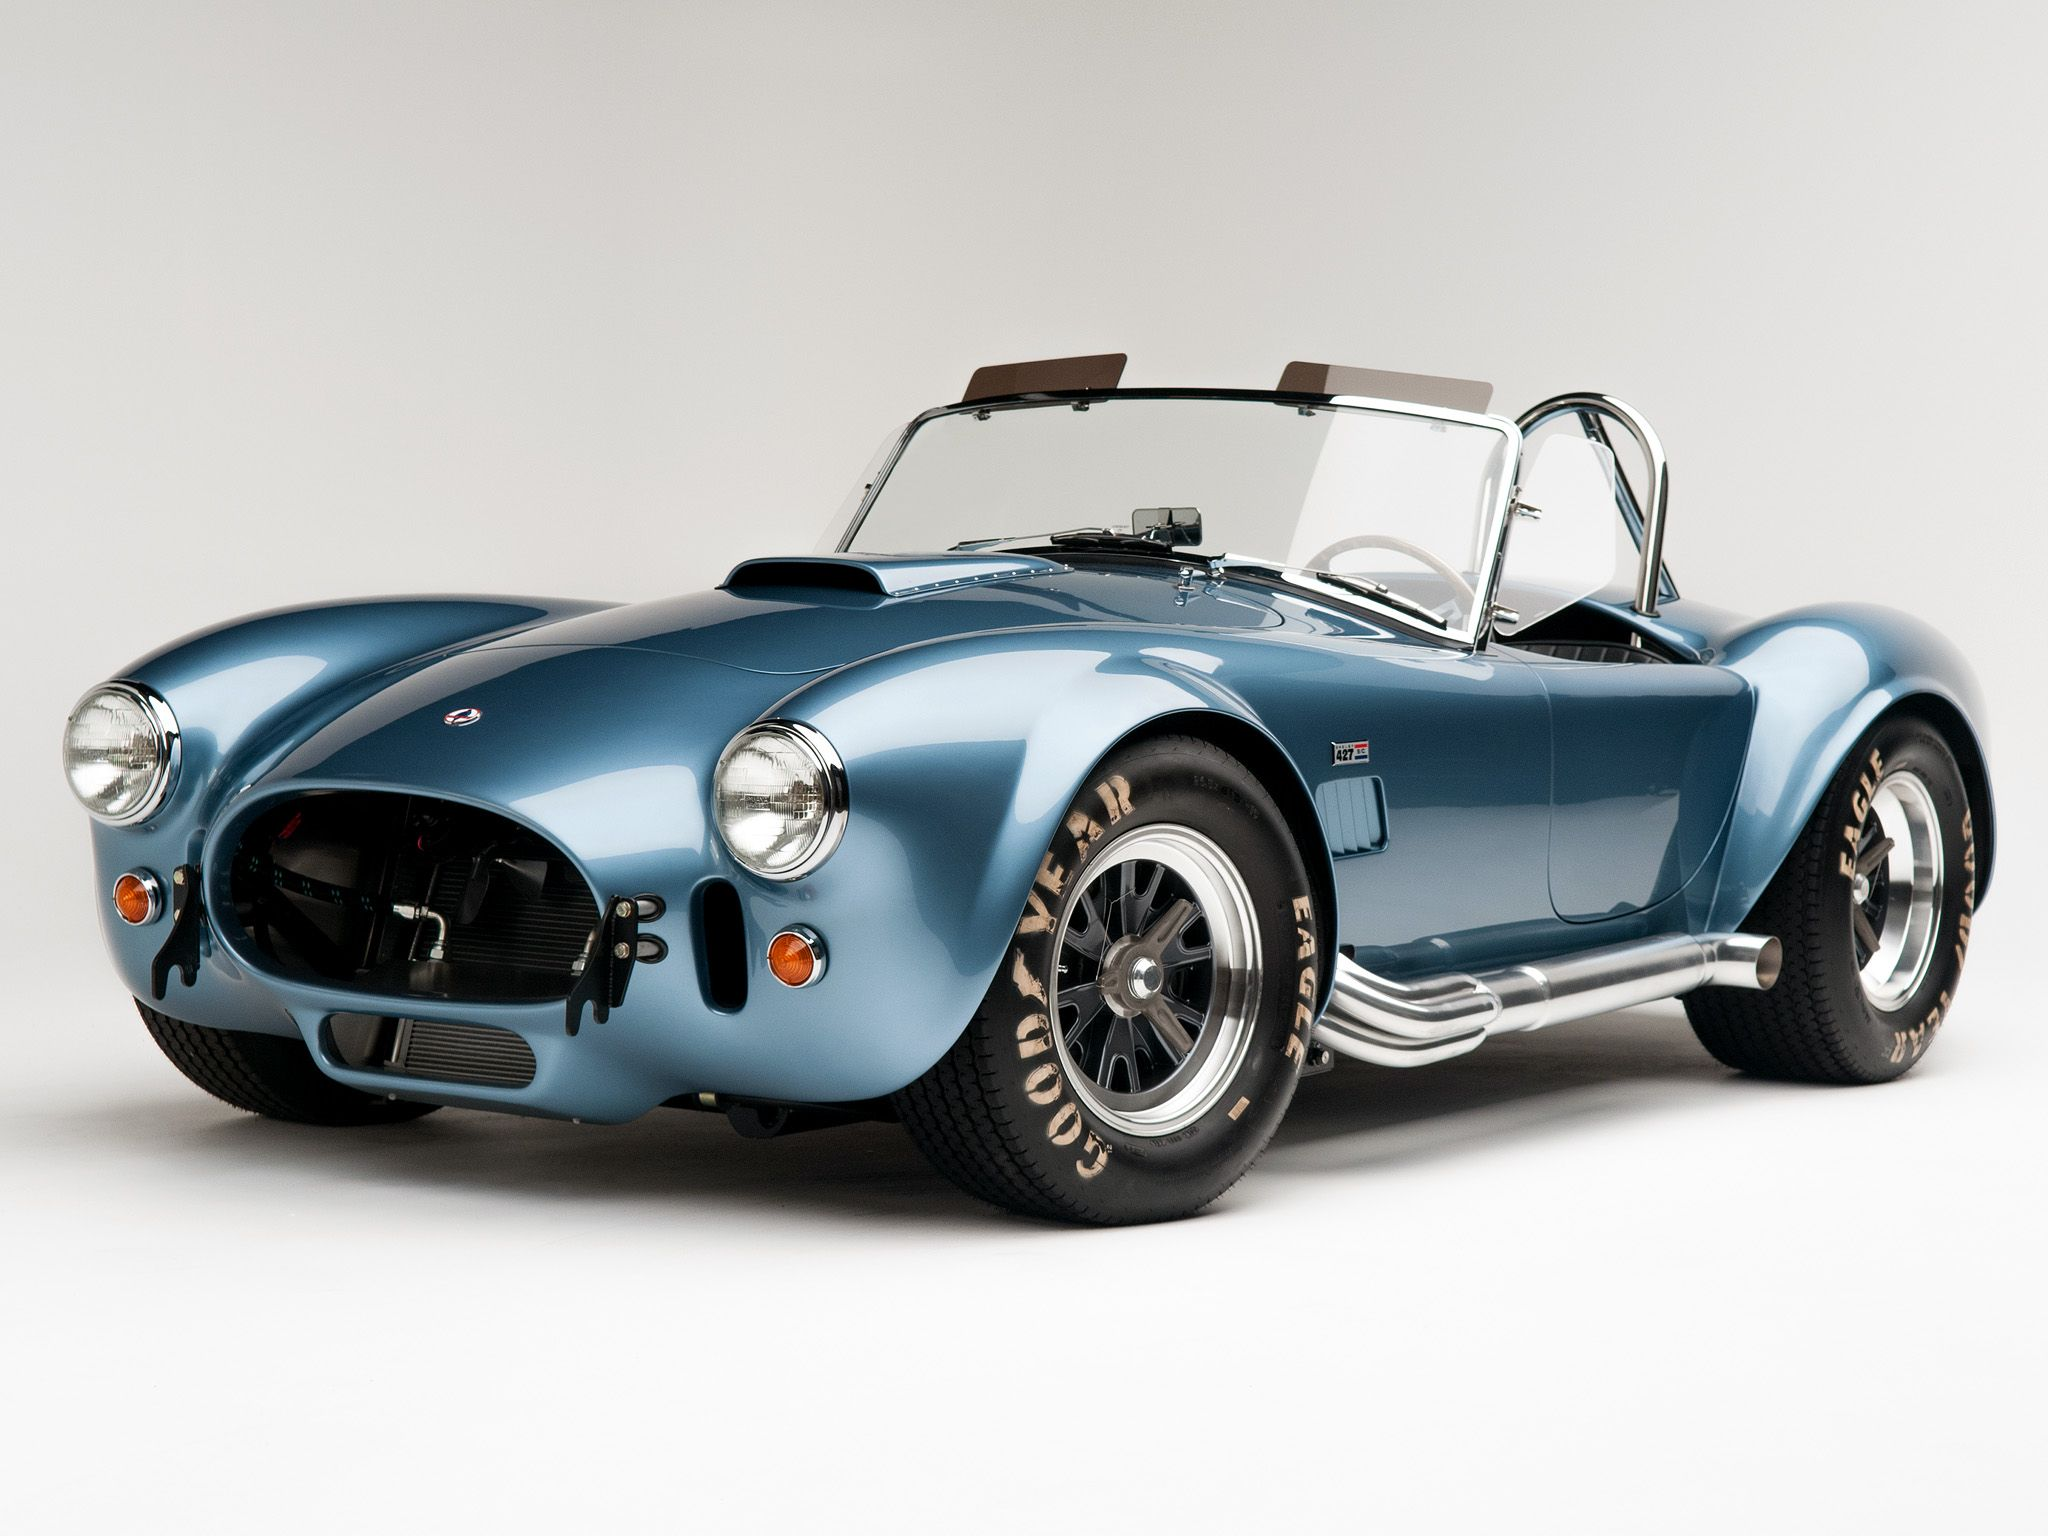 1965 shelby cobra 427 s c competition